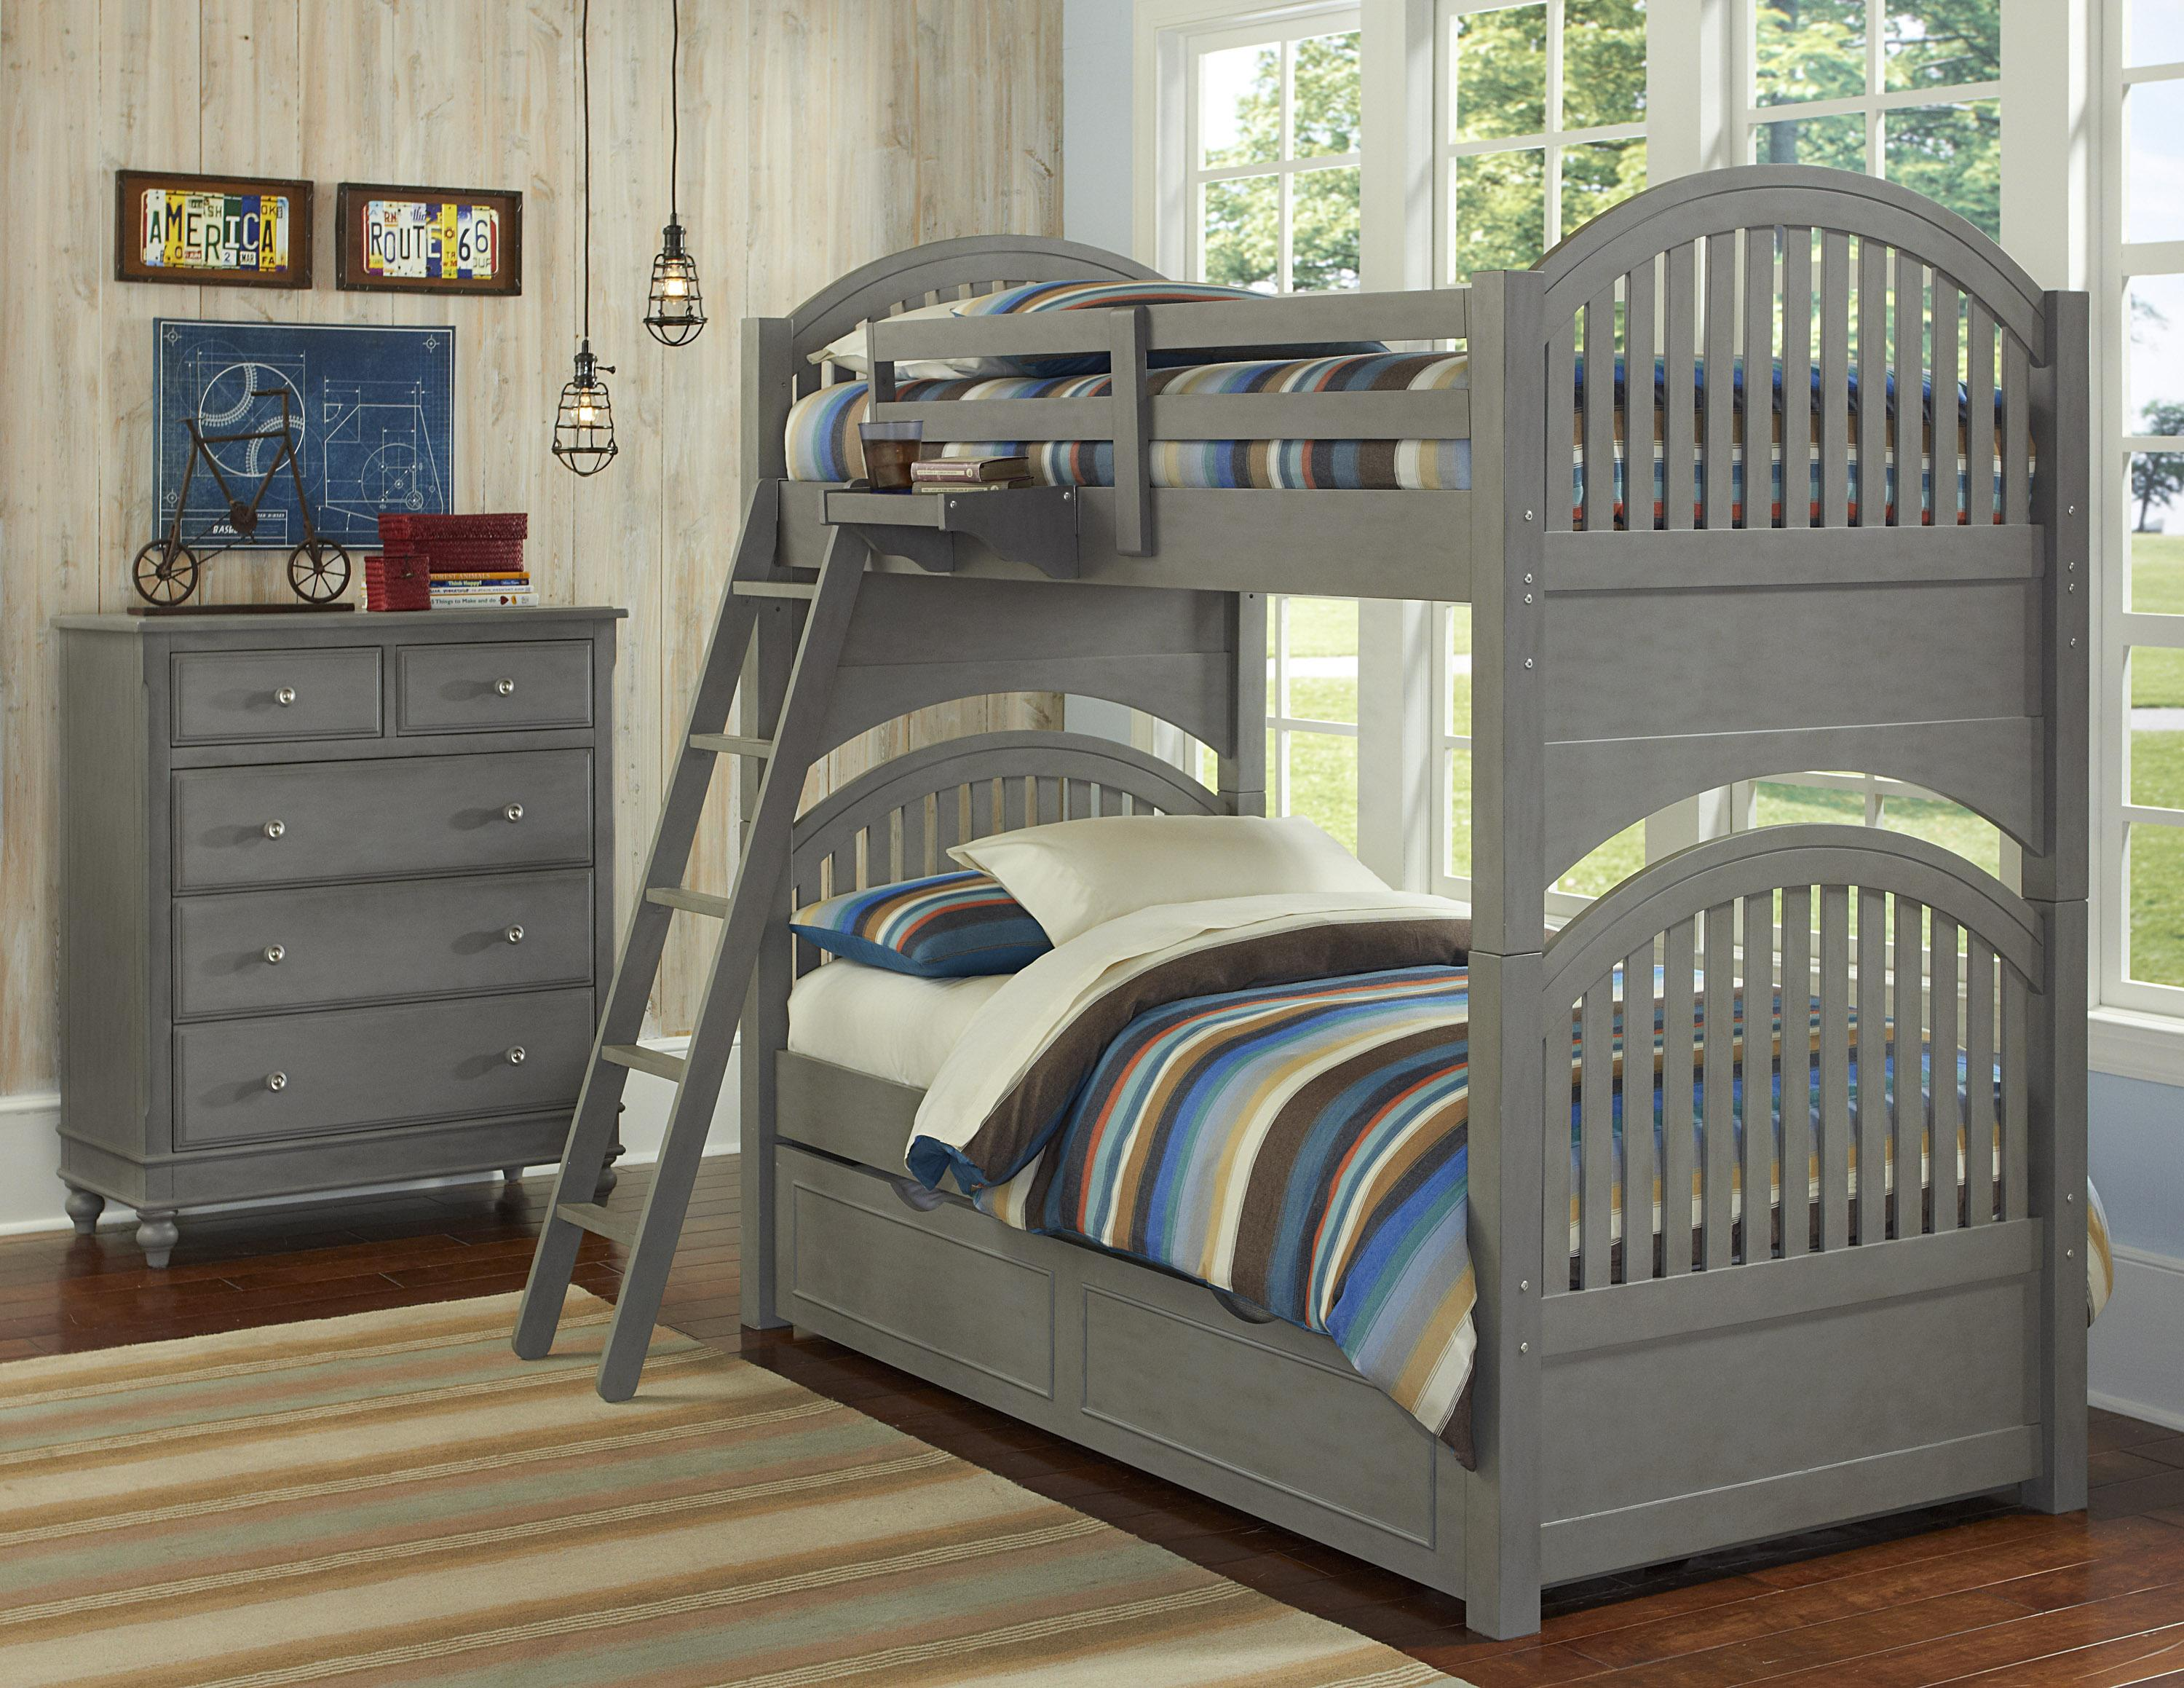 NE Kids Lake House Twin Trundle Bunk Bed  - Item Number: 200 T Bunk Bed Group 1